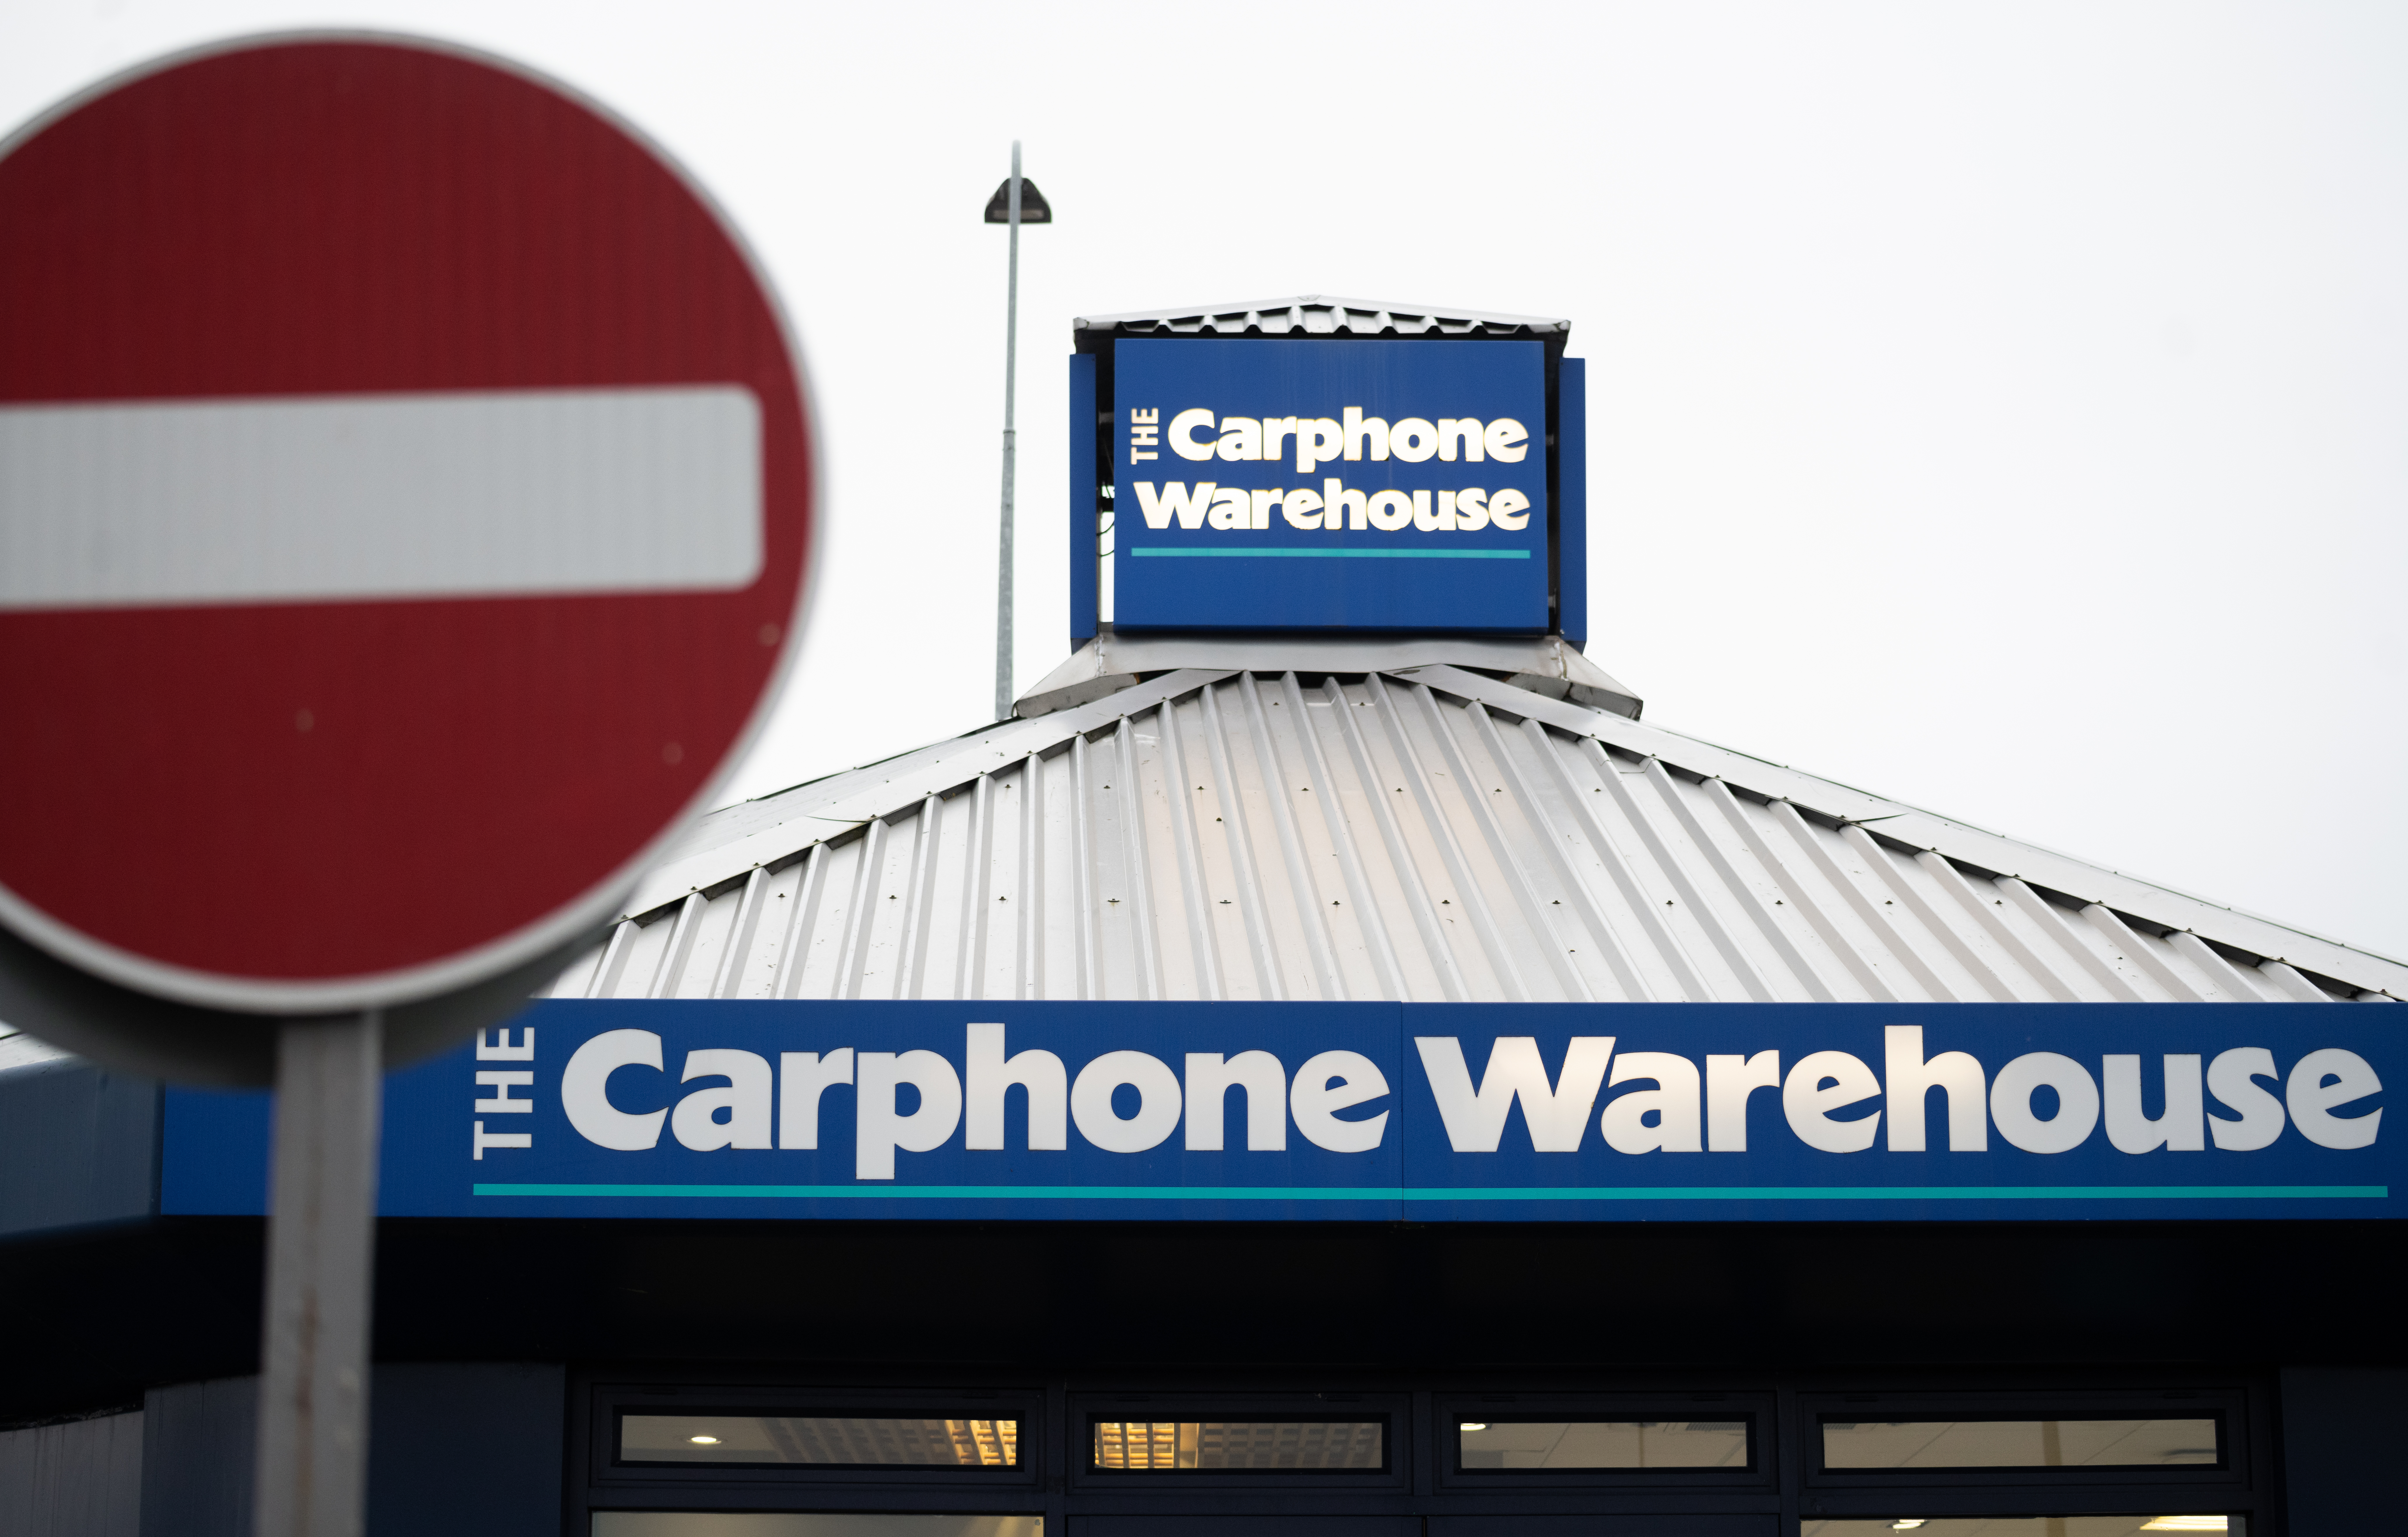 CARDIFF, UNITED KINGDOM - MARCH 17: A general view of  a Carphone Warehouse store on March 17, 2020 in Cardiff, Wales. The phone retailer has announced the closure of all its standalone stores today with the loss of 2800 jobs. (Photo by Matthew Horwood/Getty images)